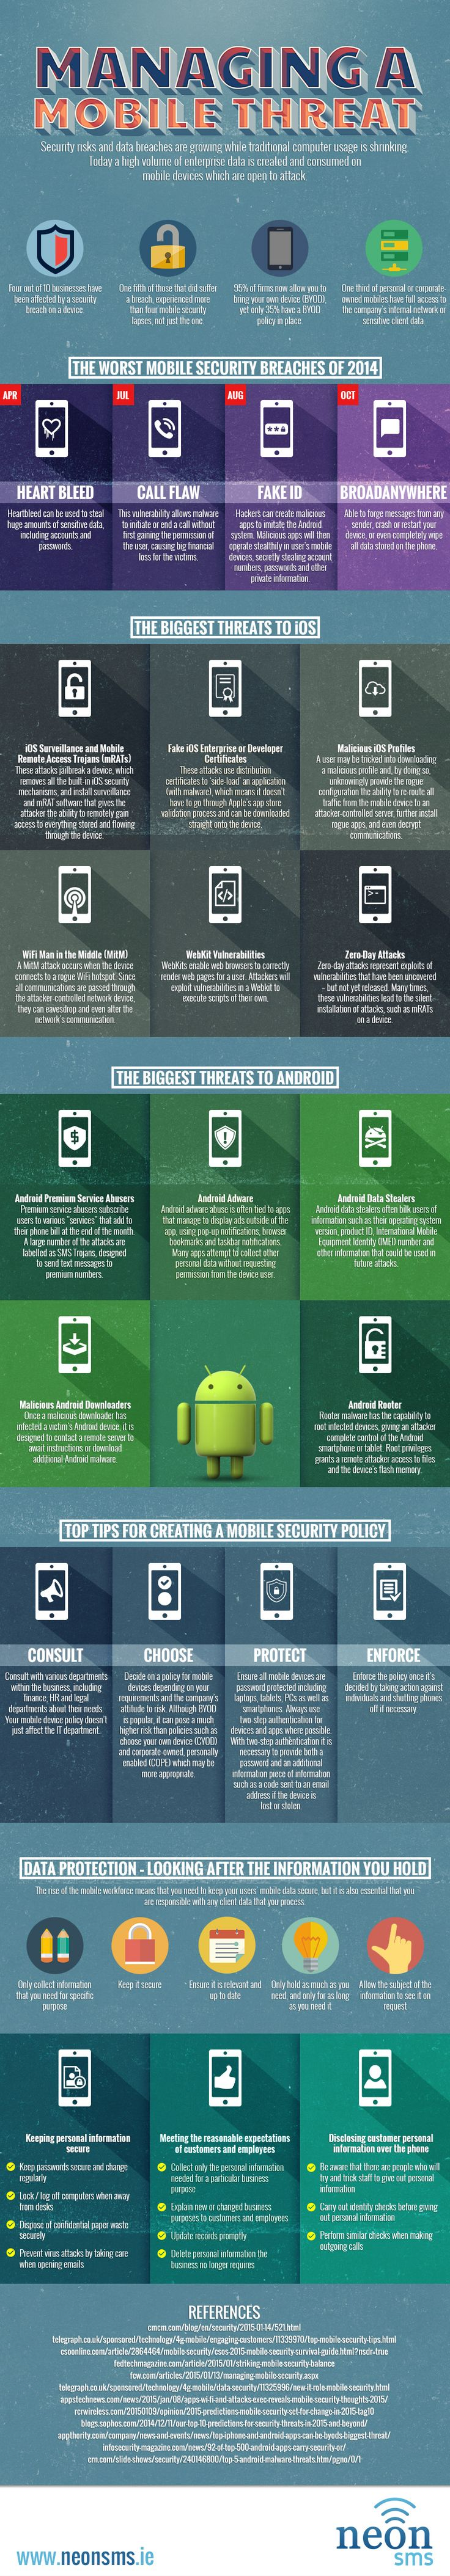 Managing a Mobile Threat #infographic #MobileDevices #Security #Hacking